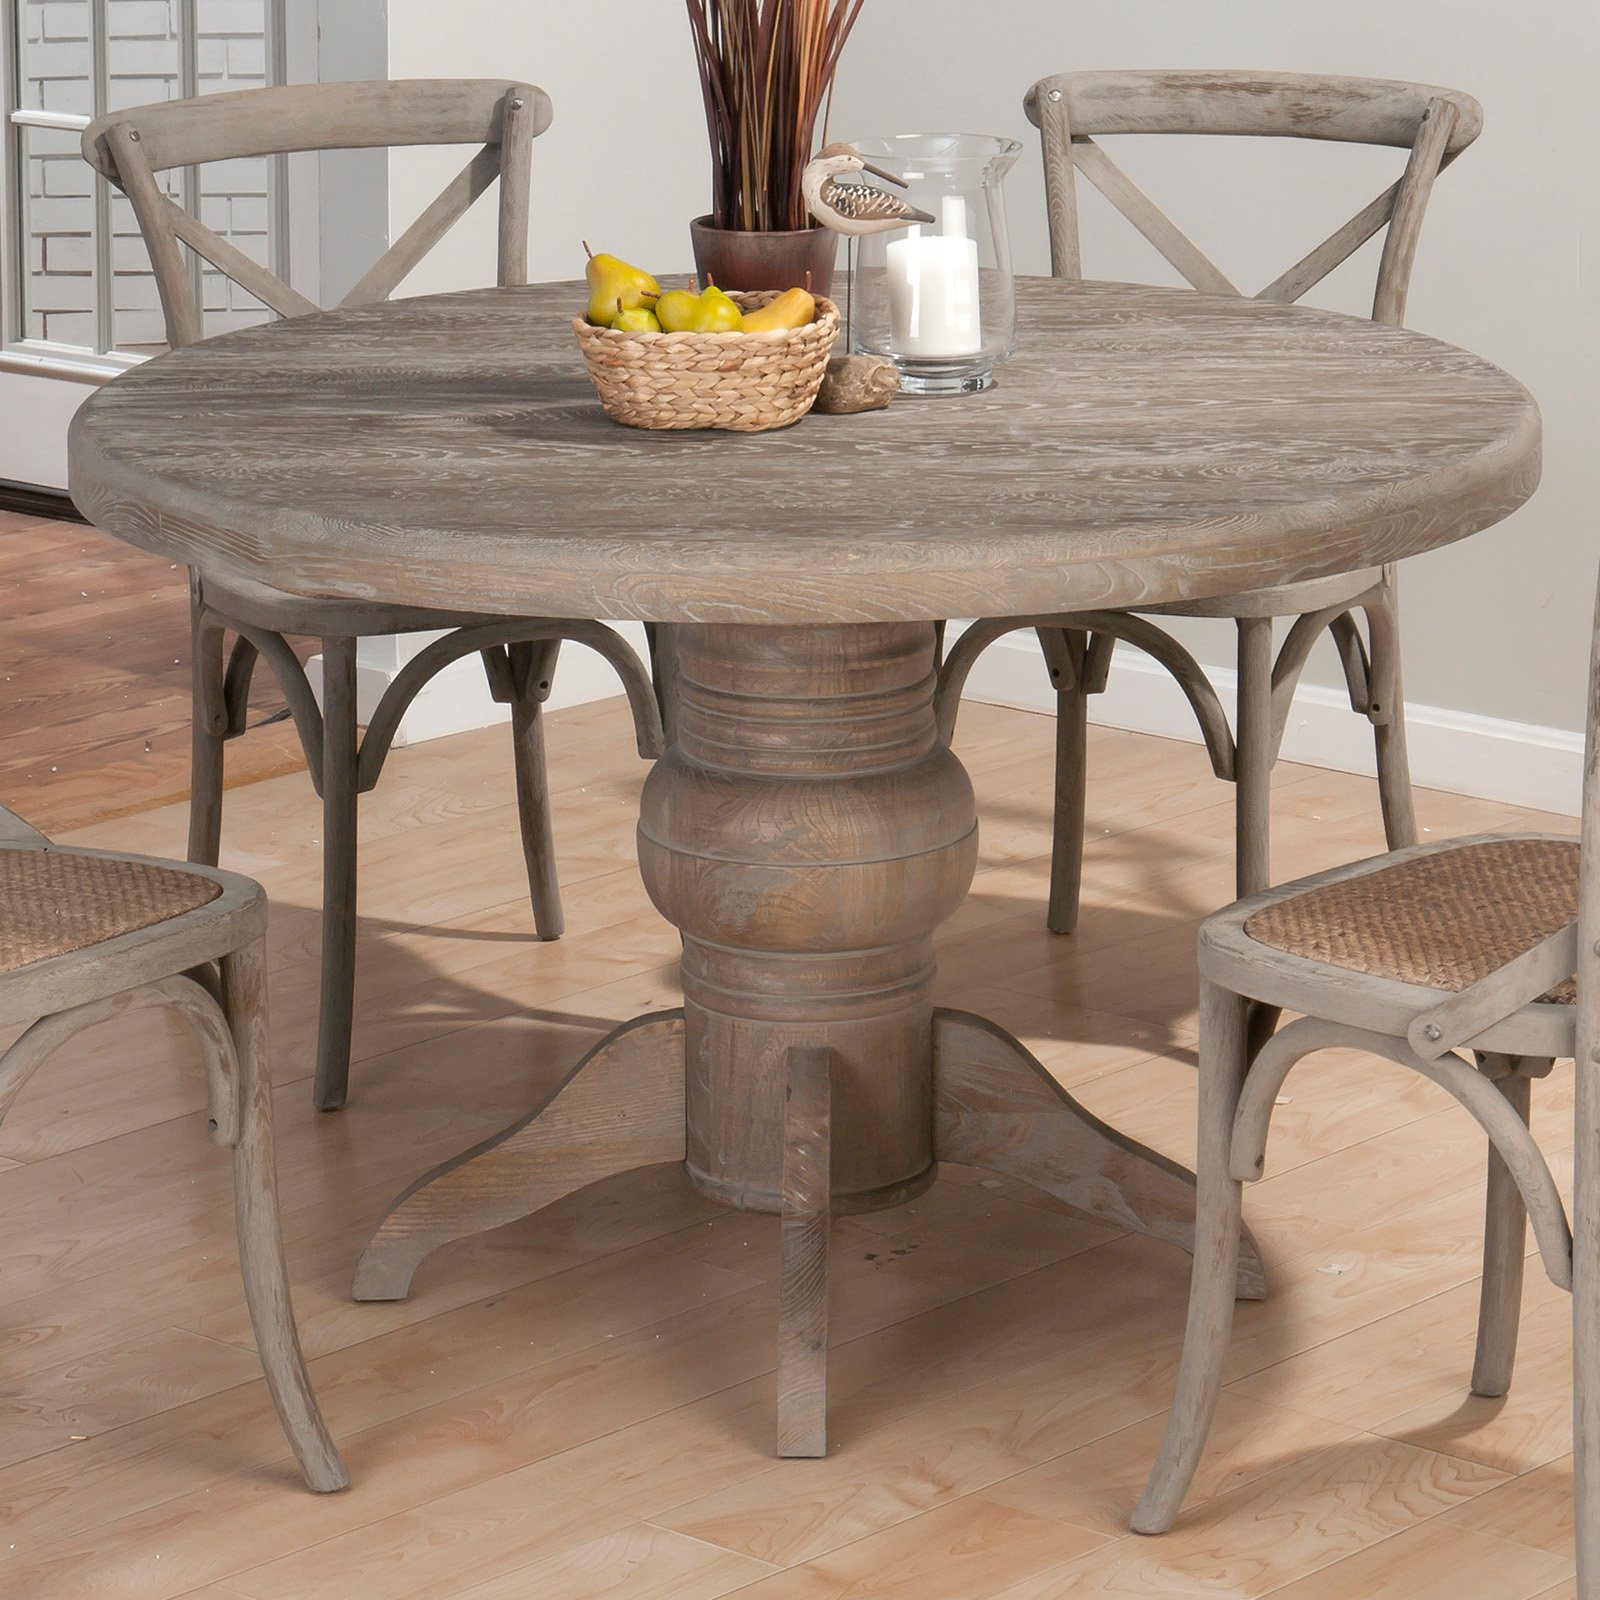 Best ideas about Booth Dining Table . Save or Pin Round dining table booth Video and s Now.